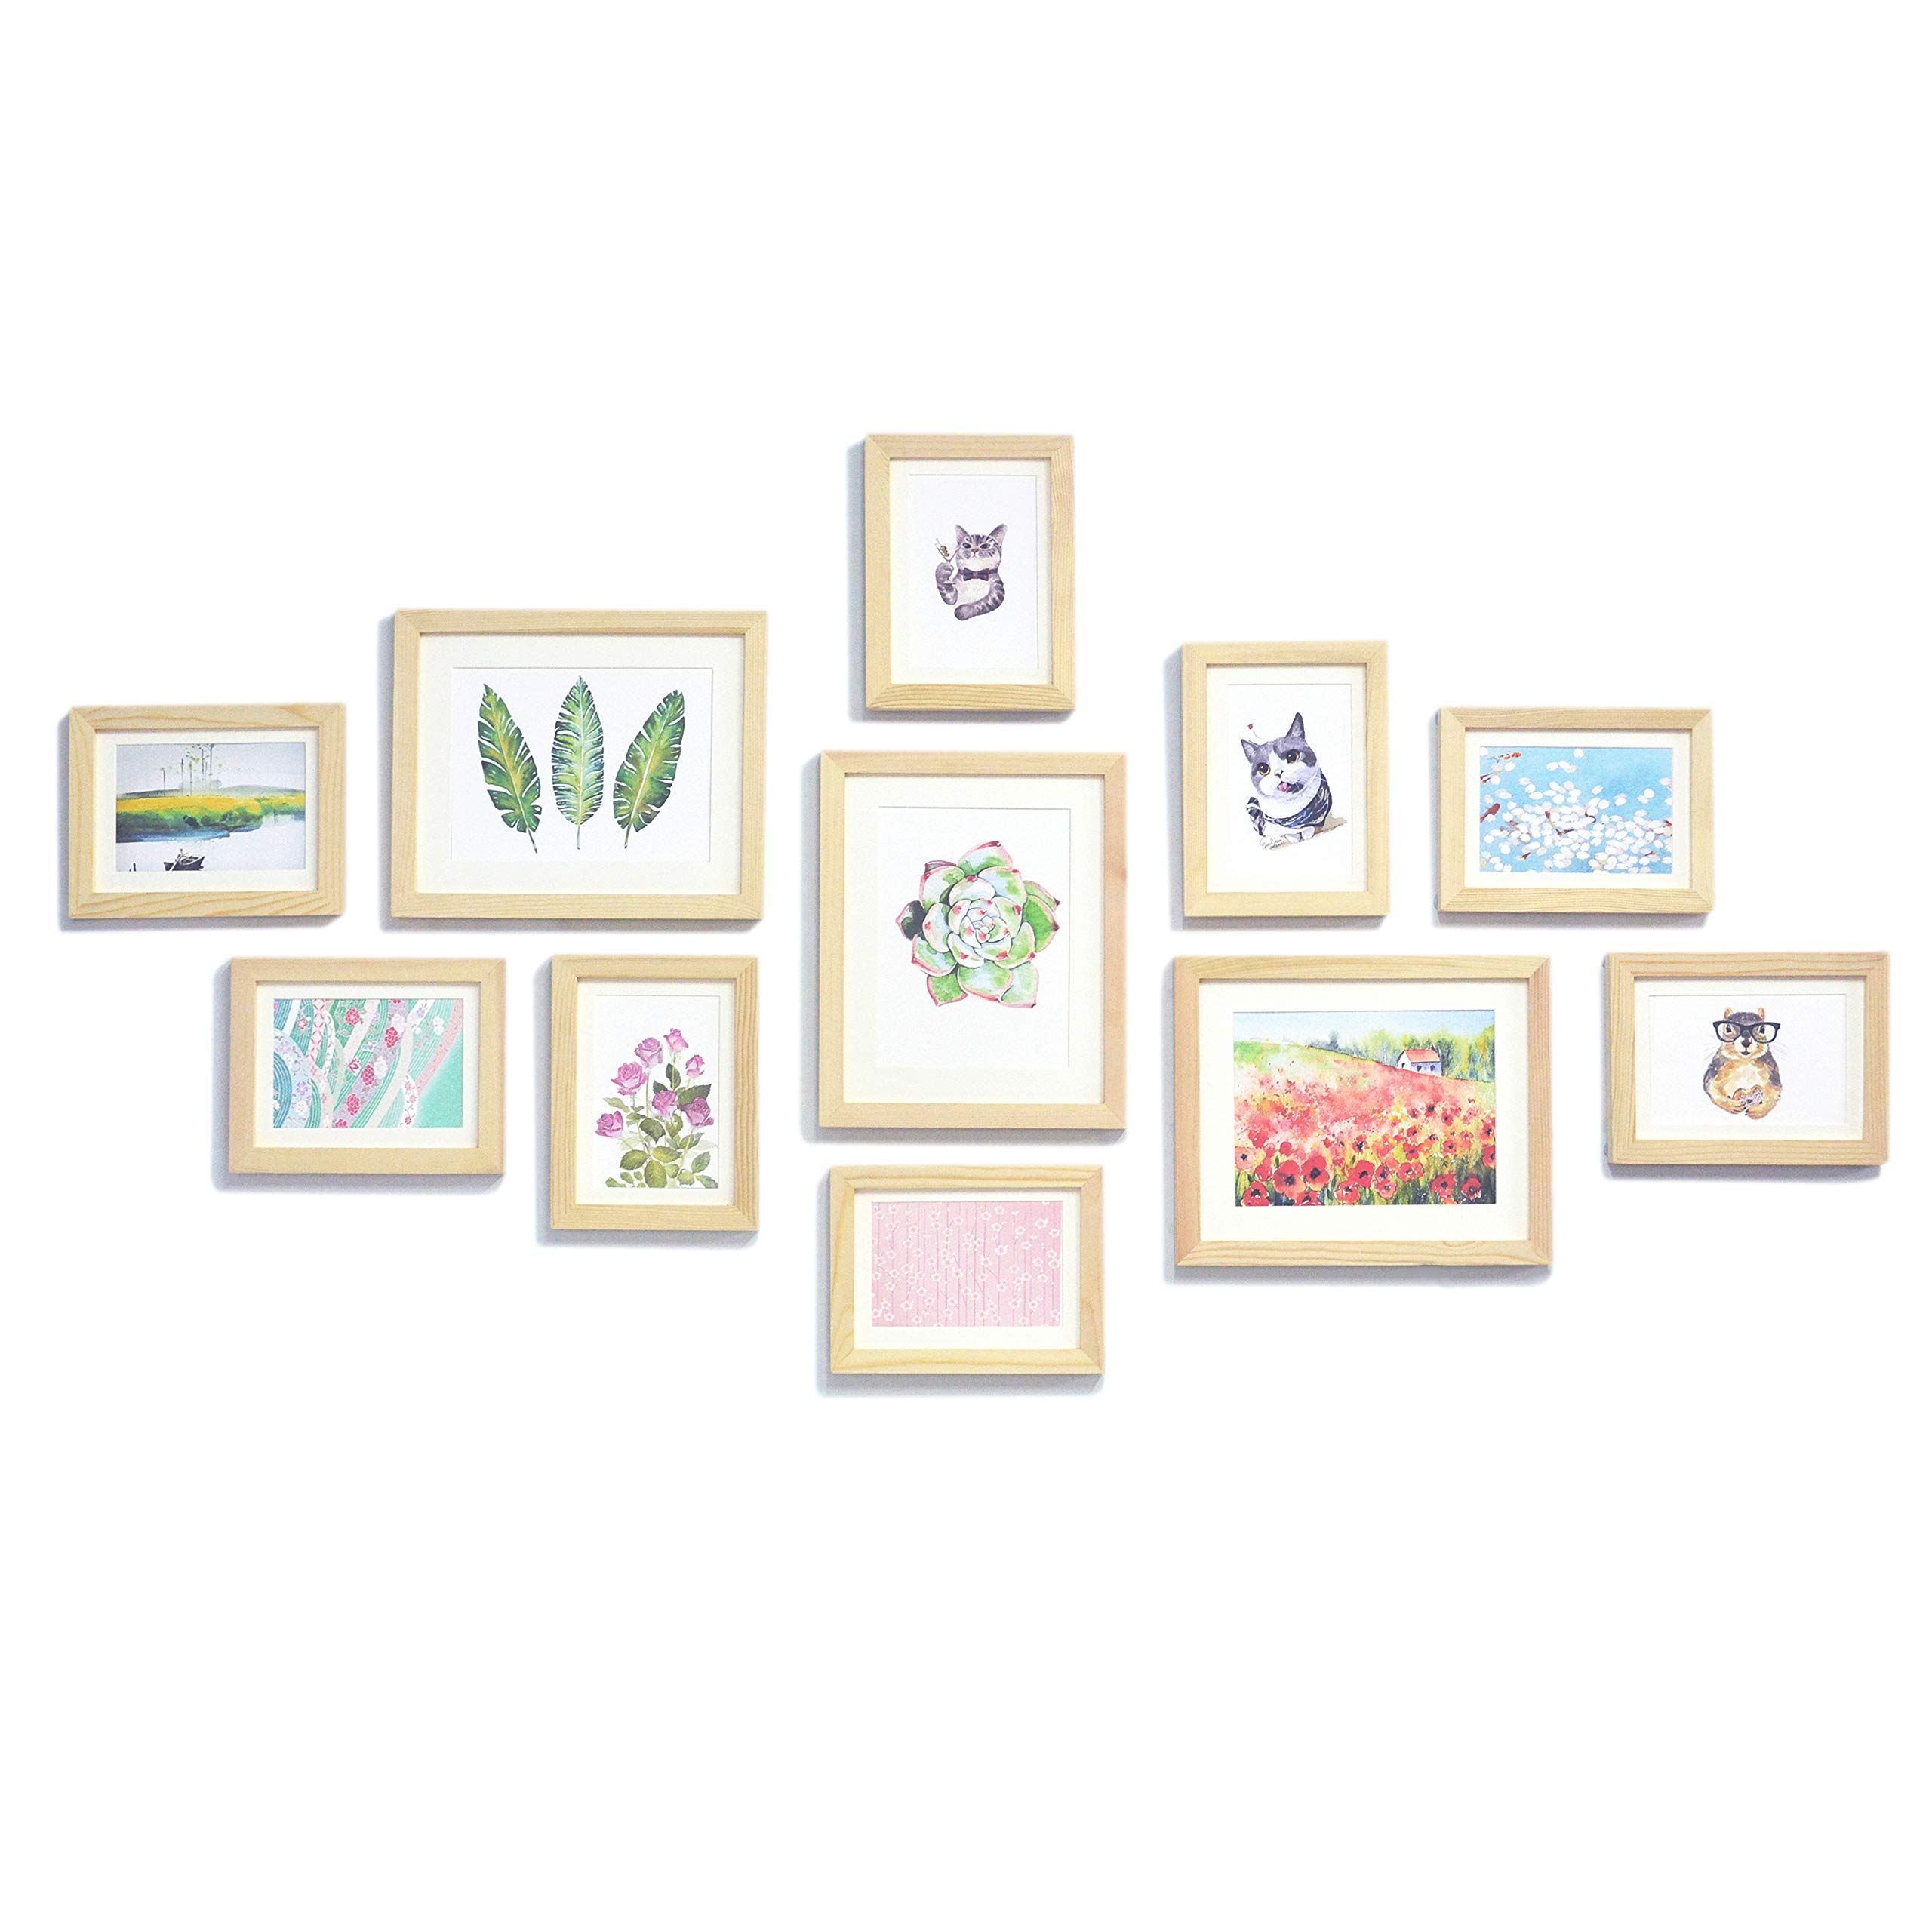 Ray & Chow Natural Gallery Wall Picture Frames Set- 11 Frames- Solid Wood- Glass Window-Made to Display 8x10 5x7 Pictures Without Mat or 6x8 4x6 Pictures with Mat - Hanging Hardware Included by Ray & Chow